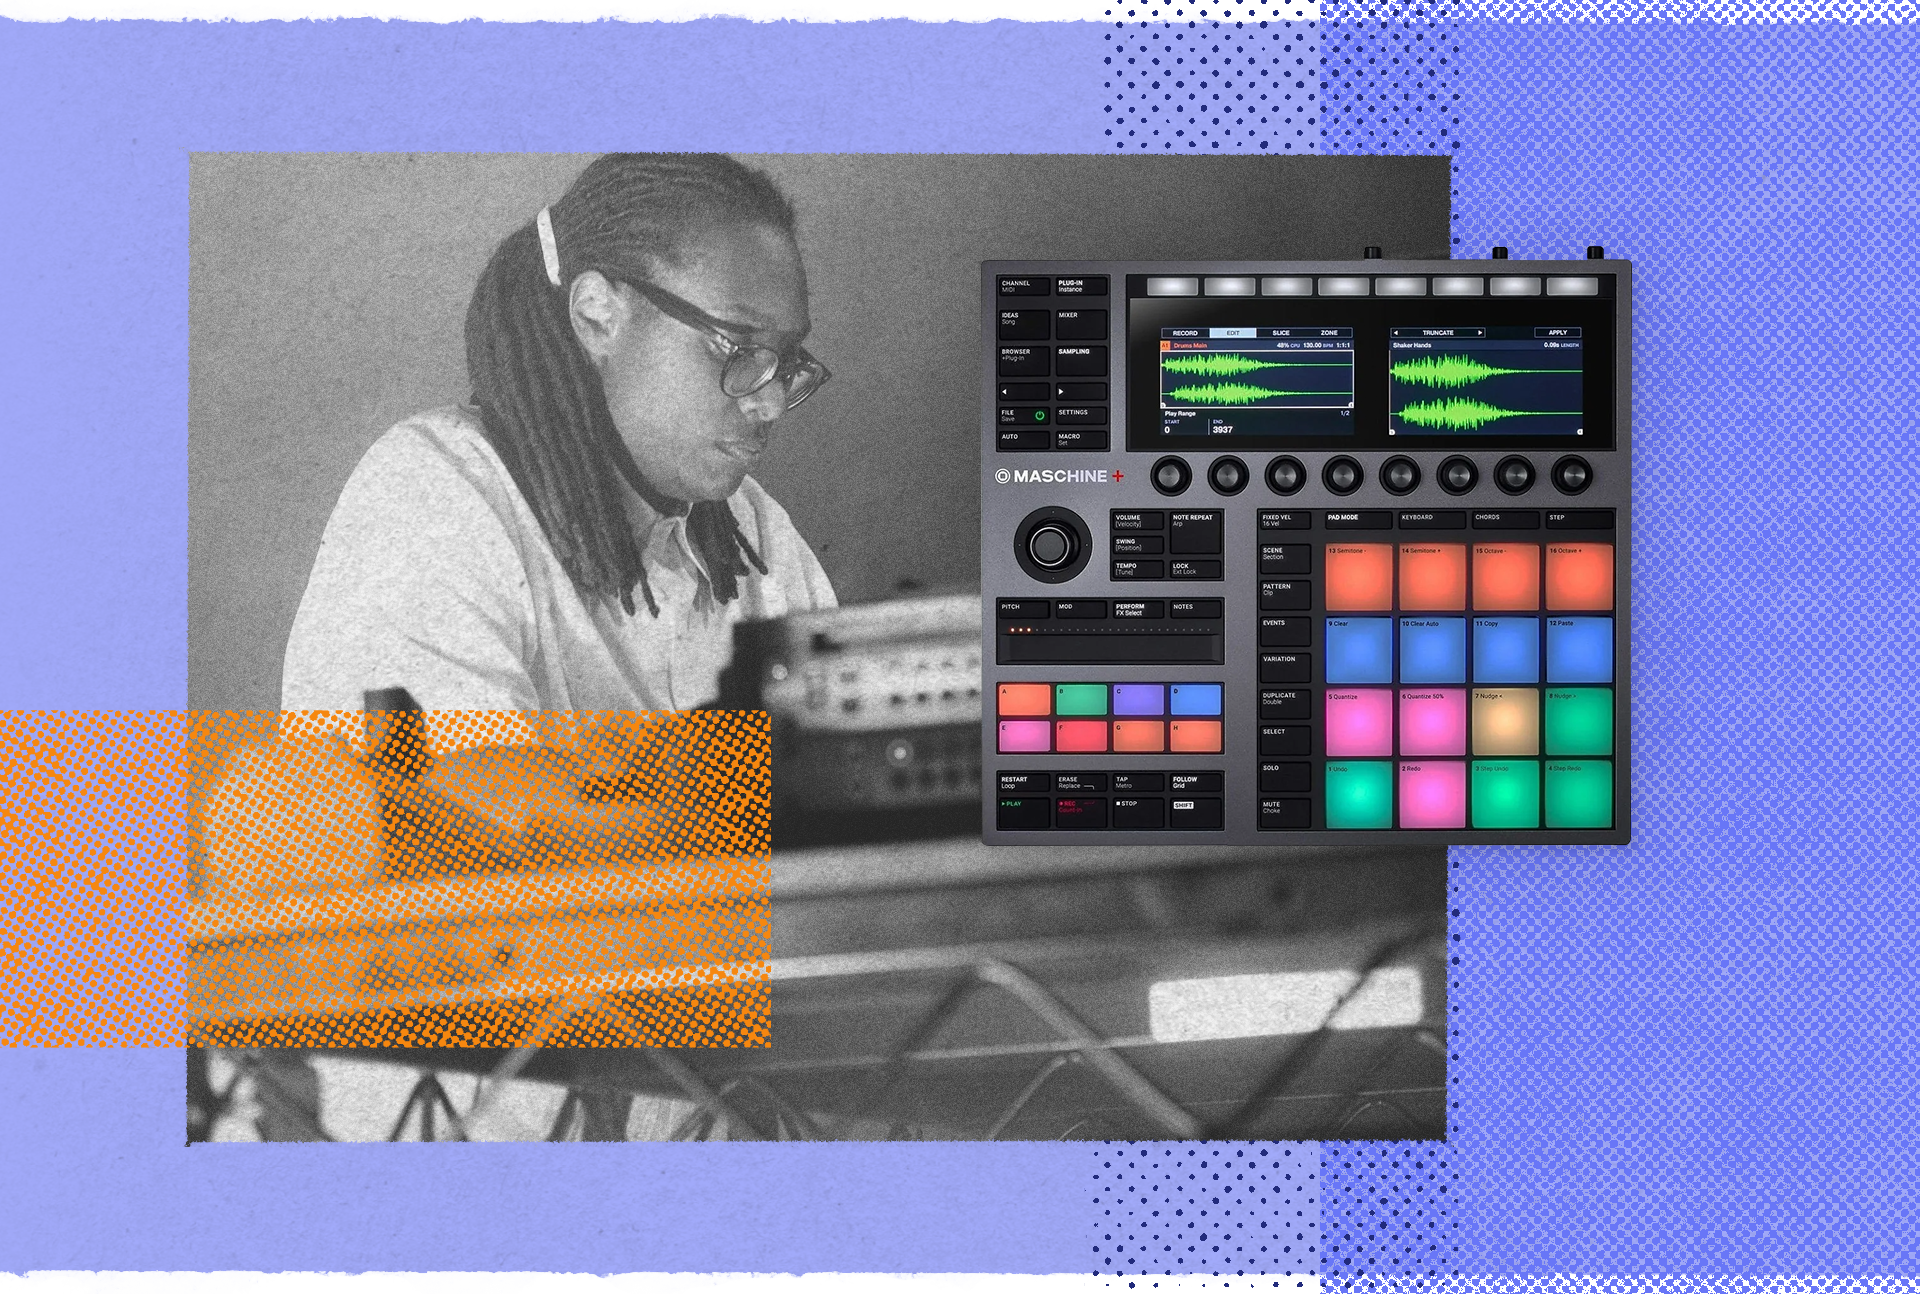 Jlin with the Native Instruments Maschine